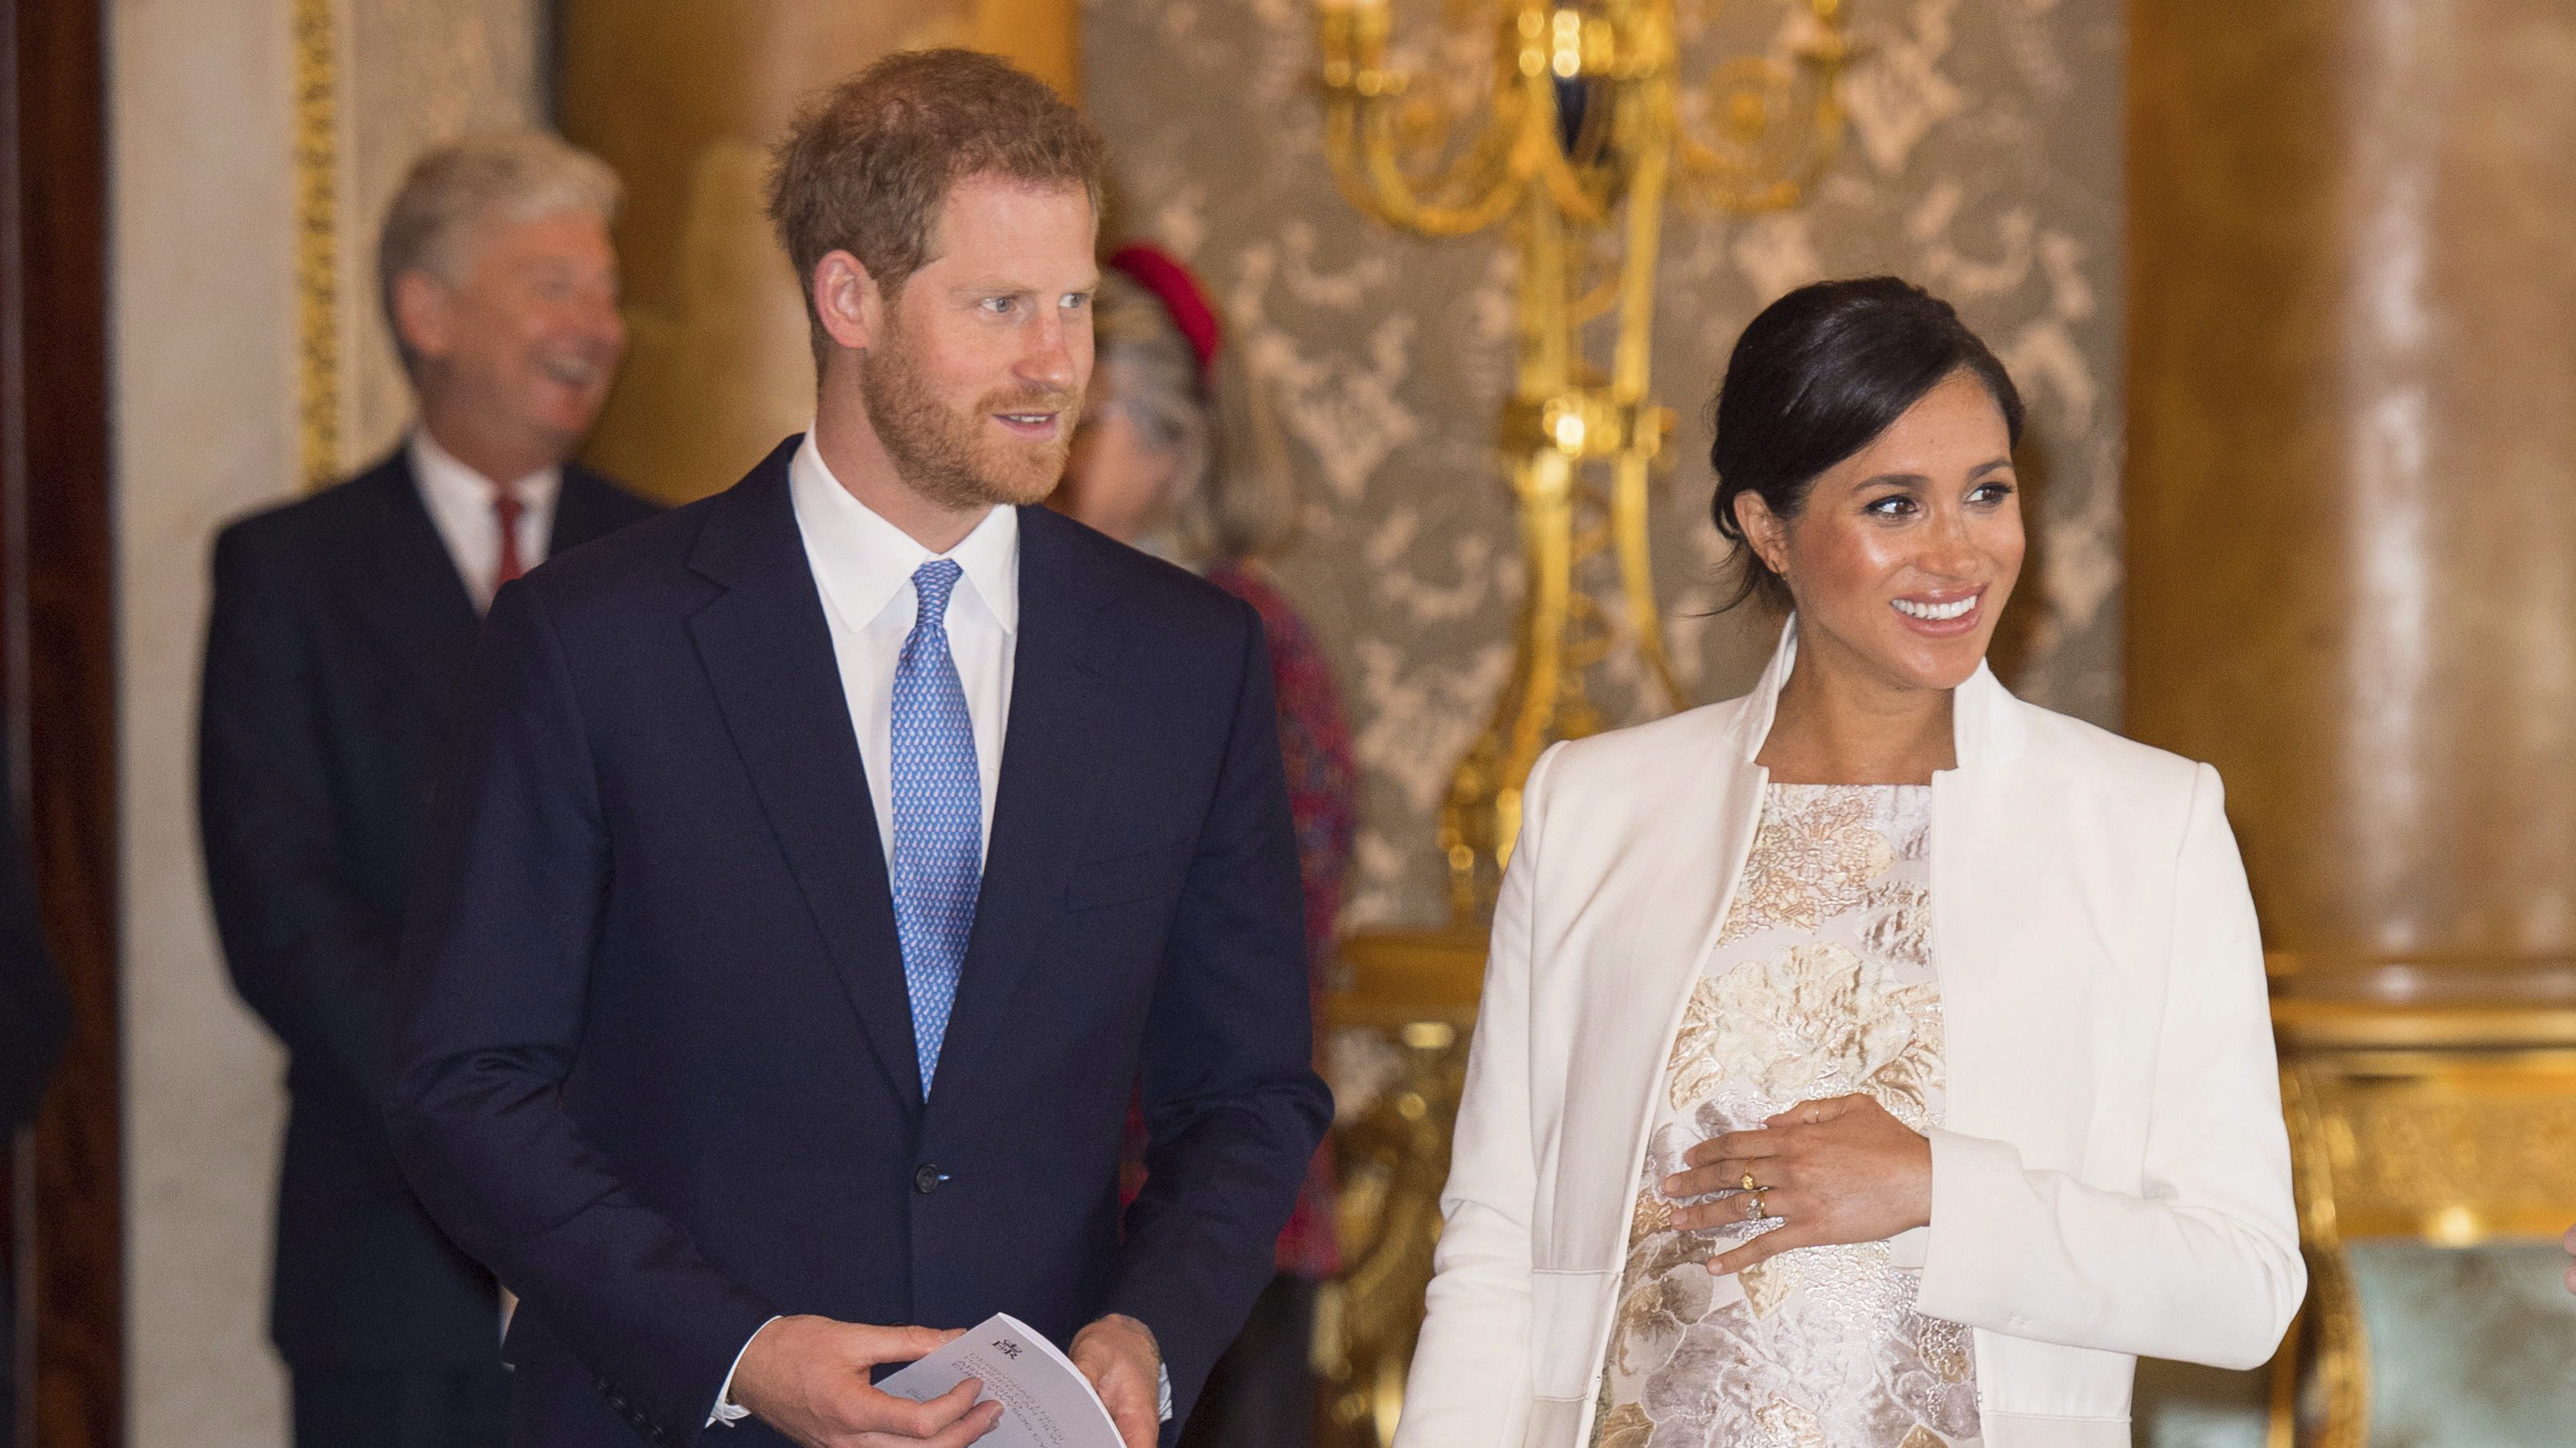 A New Royal Baby Gives Brits A Chance To Talk About Race